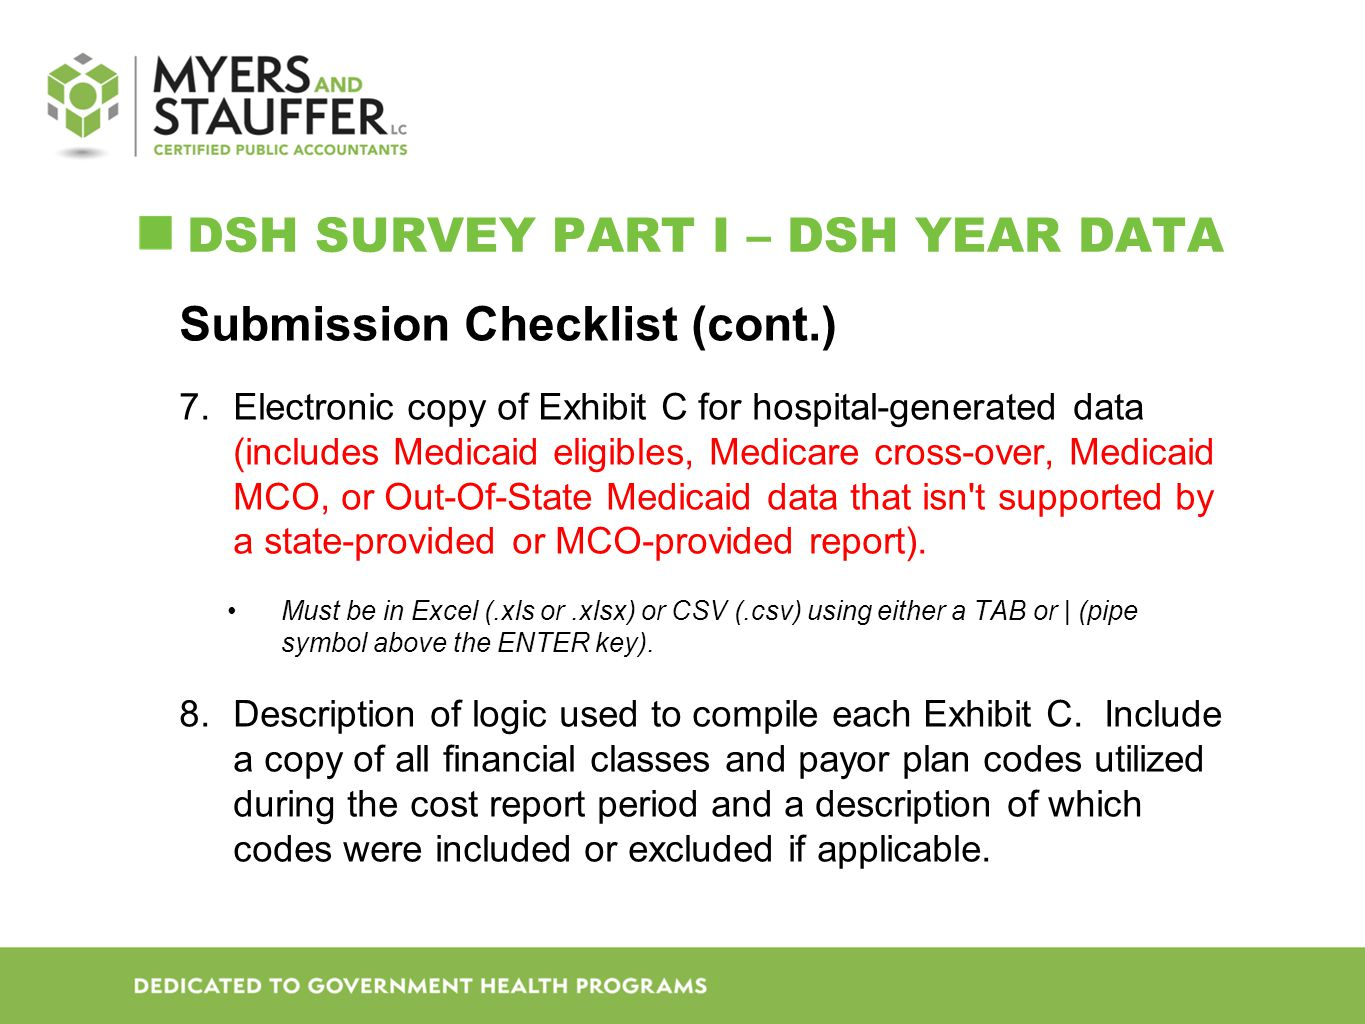 DSH SURVEY PART I – DSH YEAR DATA Submission Checklist (cont.) 7.Electronic copy of Exhibit C for hospital-generated data (includes Medicaid eligibles, Medicare cross-over, Medicaid MCO, or Out-Of-State Medicaid data that isn t supported by a state-provided or MCO-provided report).